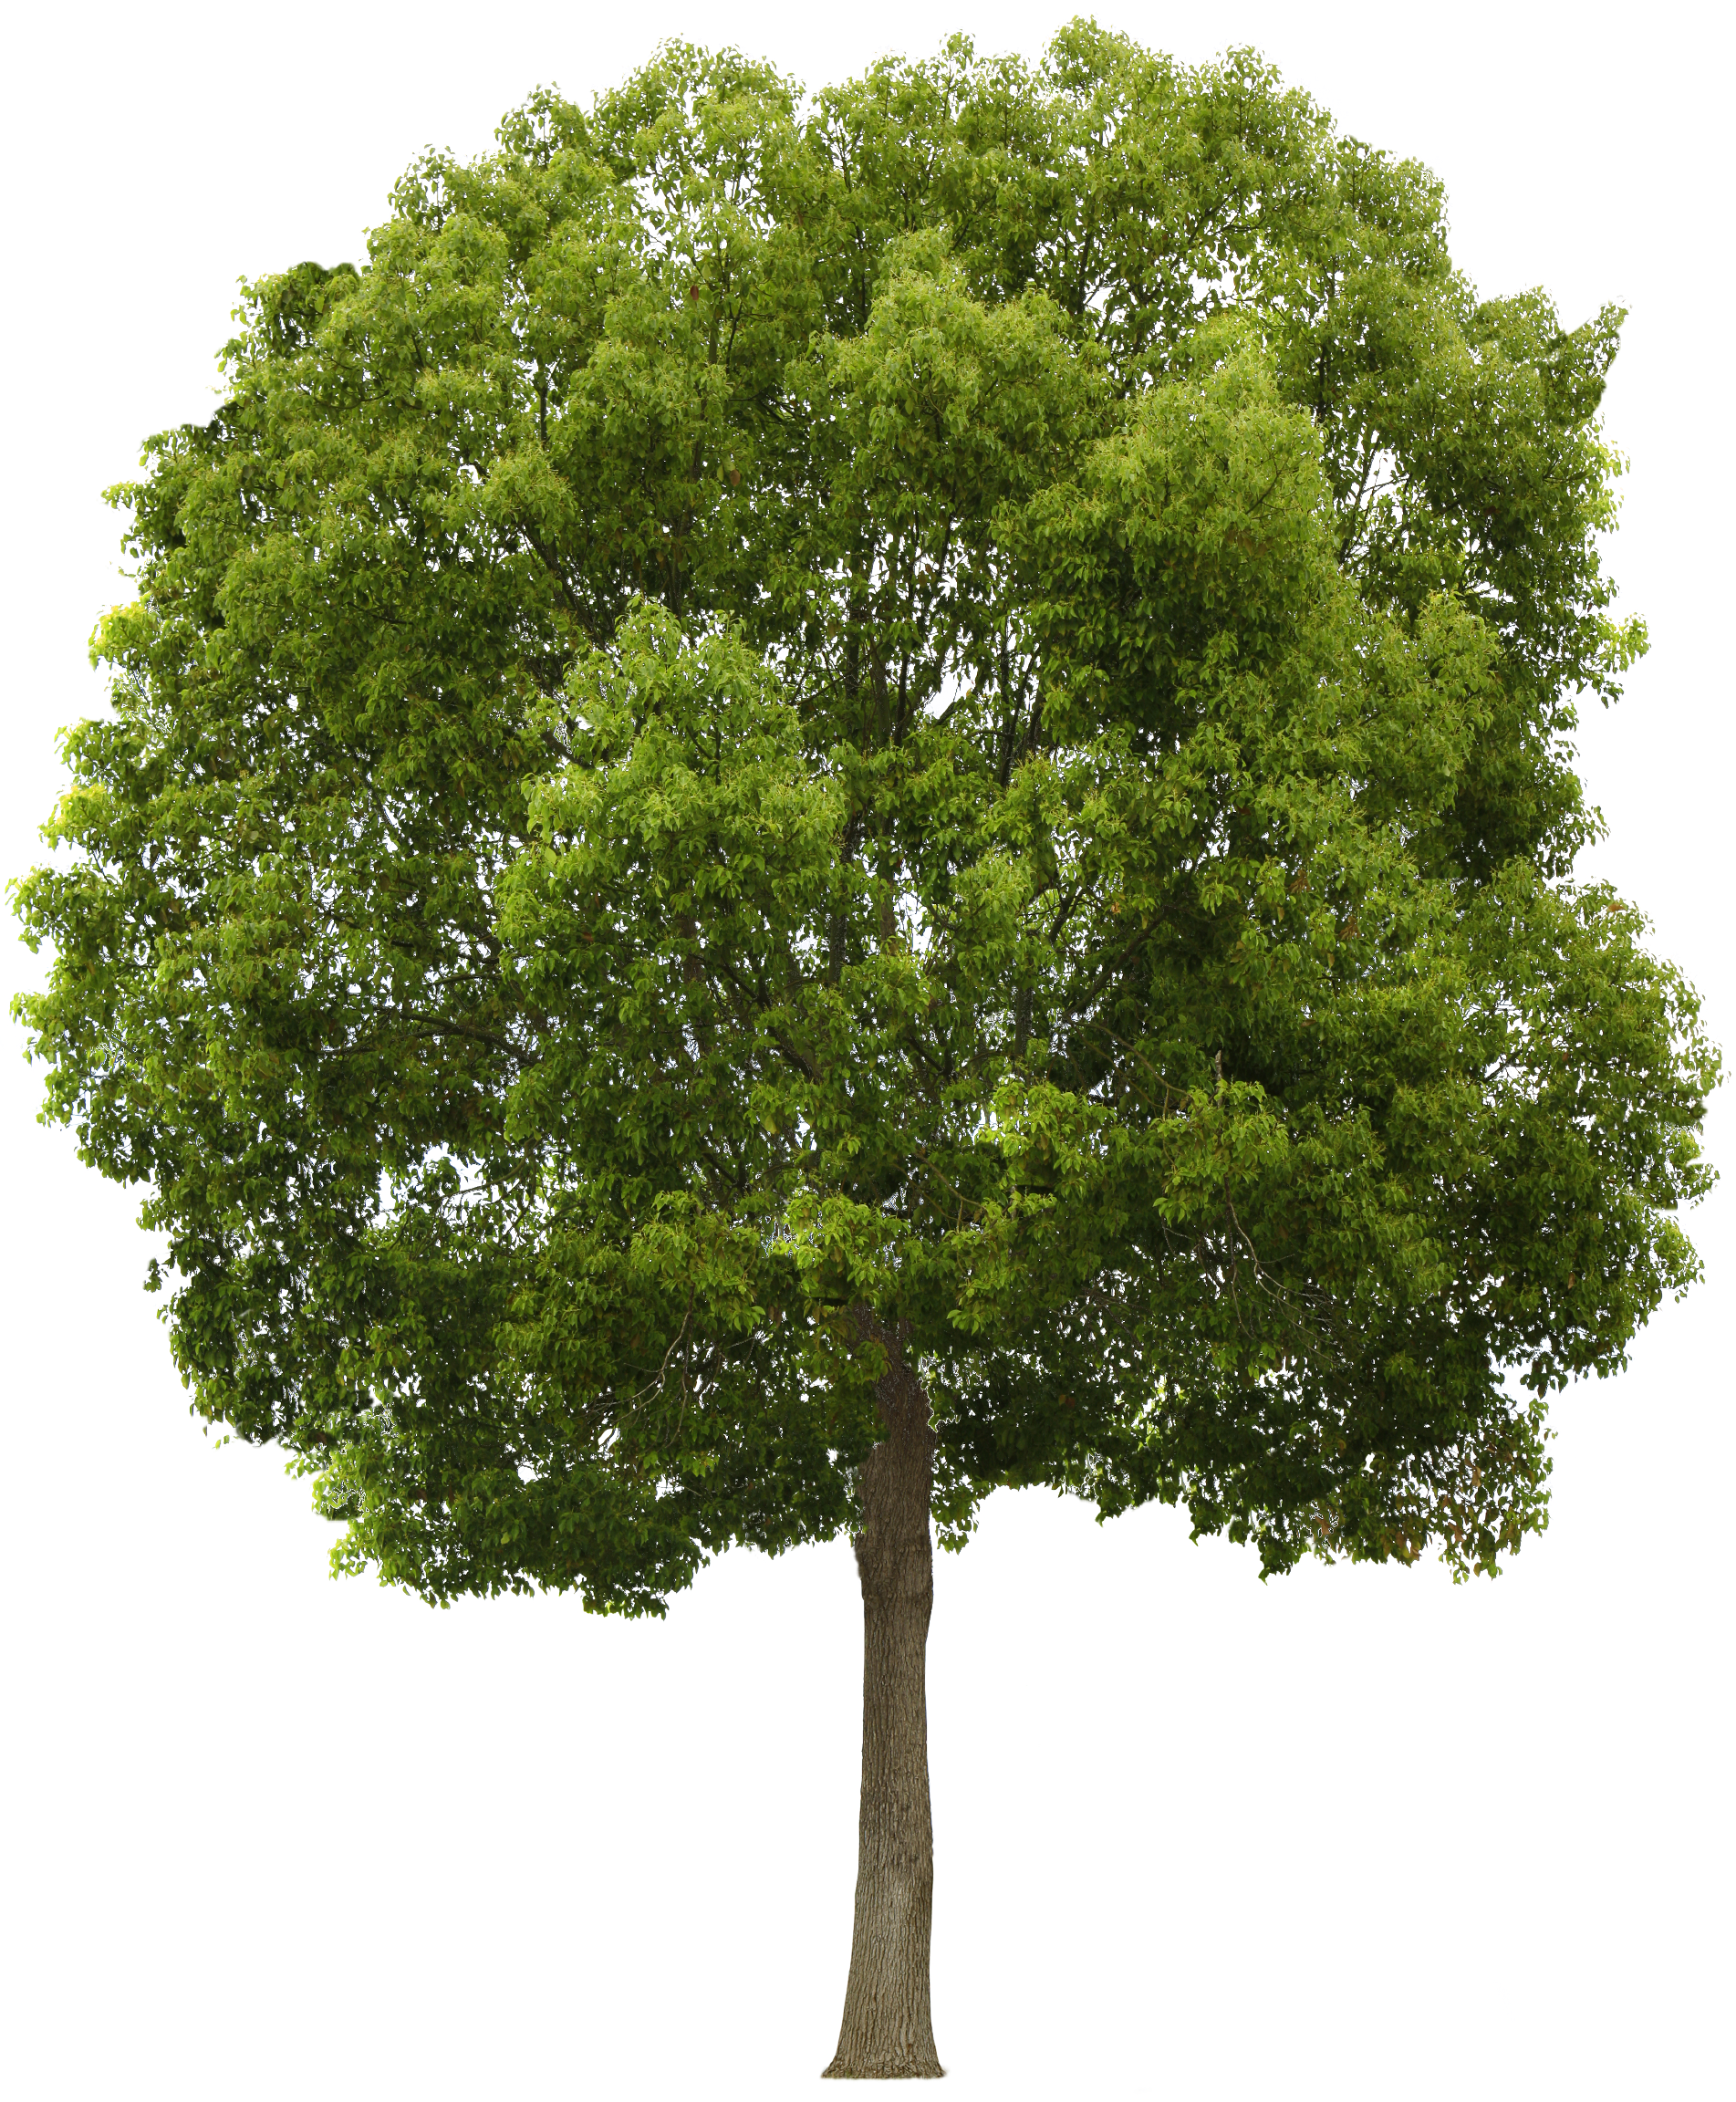 California sycamore png. Image result for tree